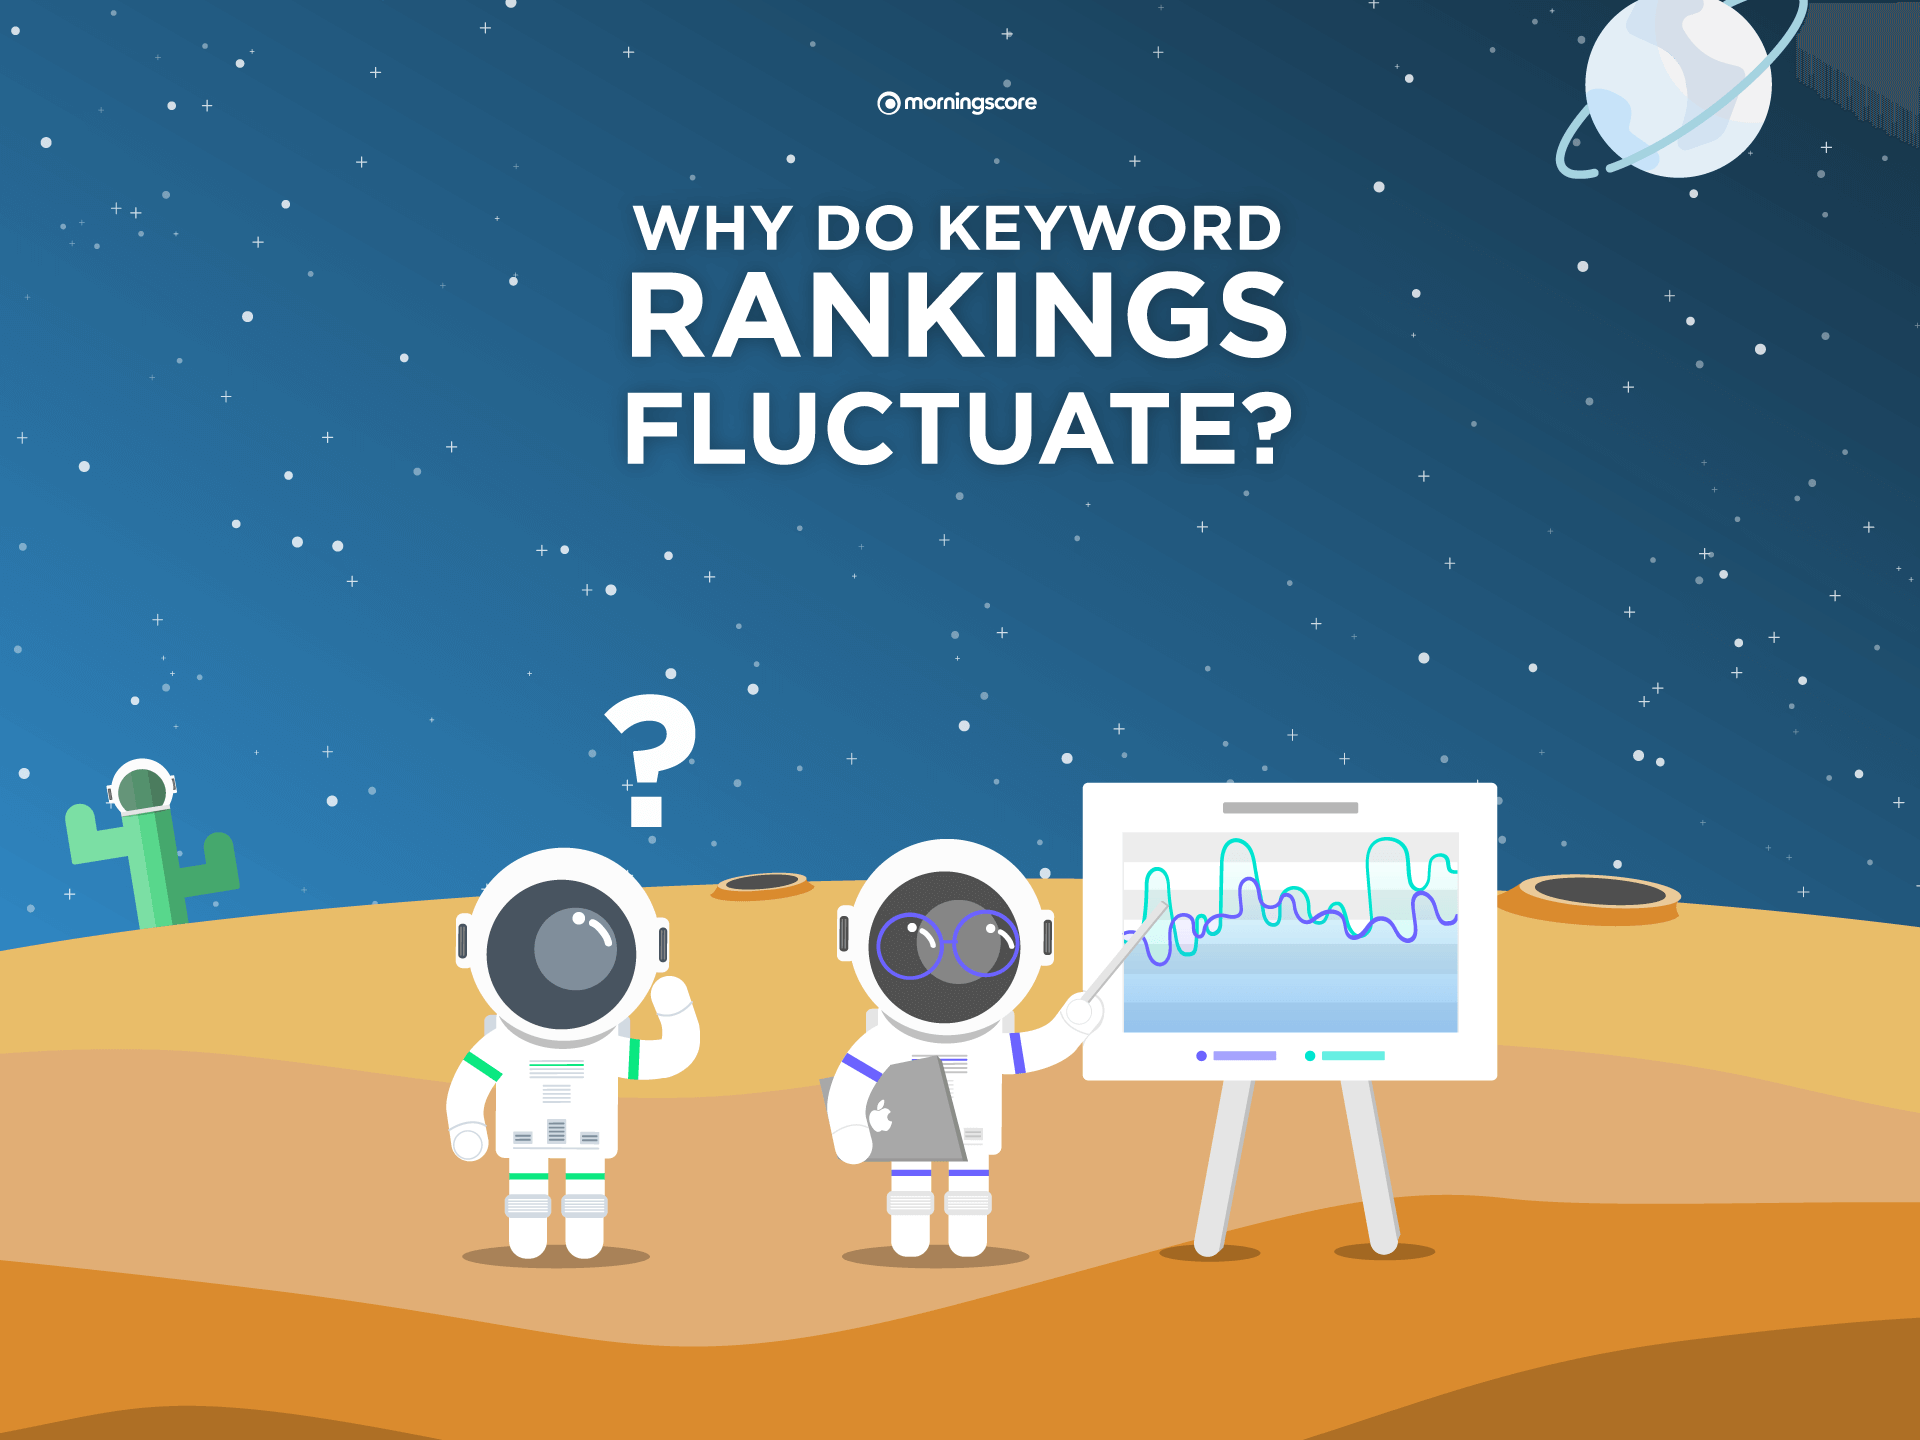 why do keyword rankings fluctuate so much and how to troubleshoot them